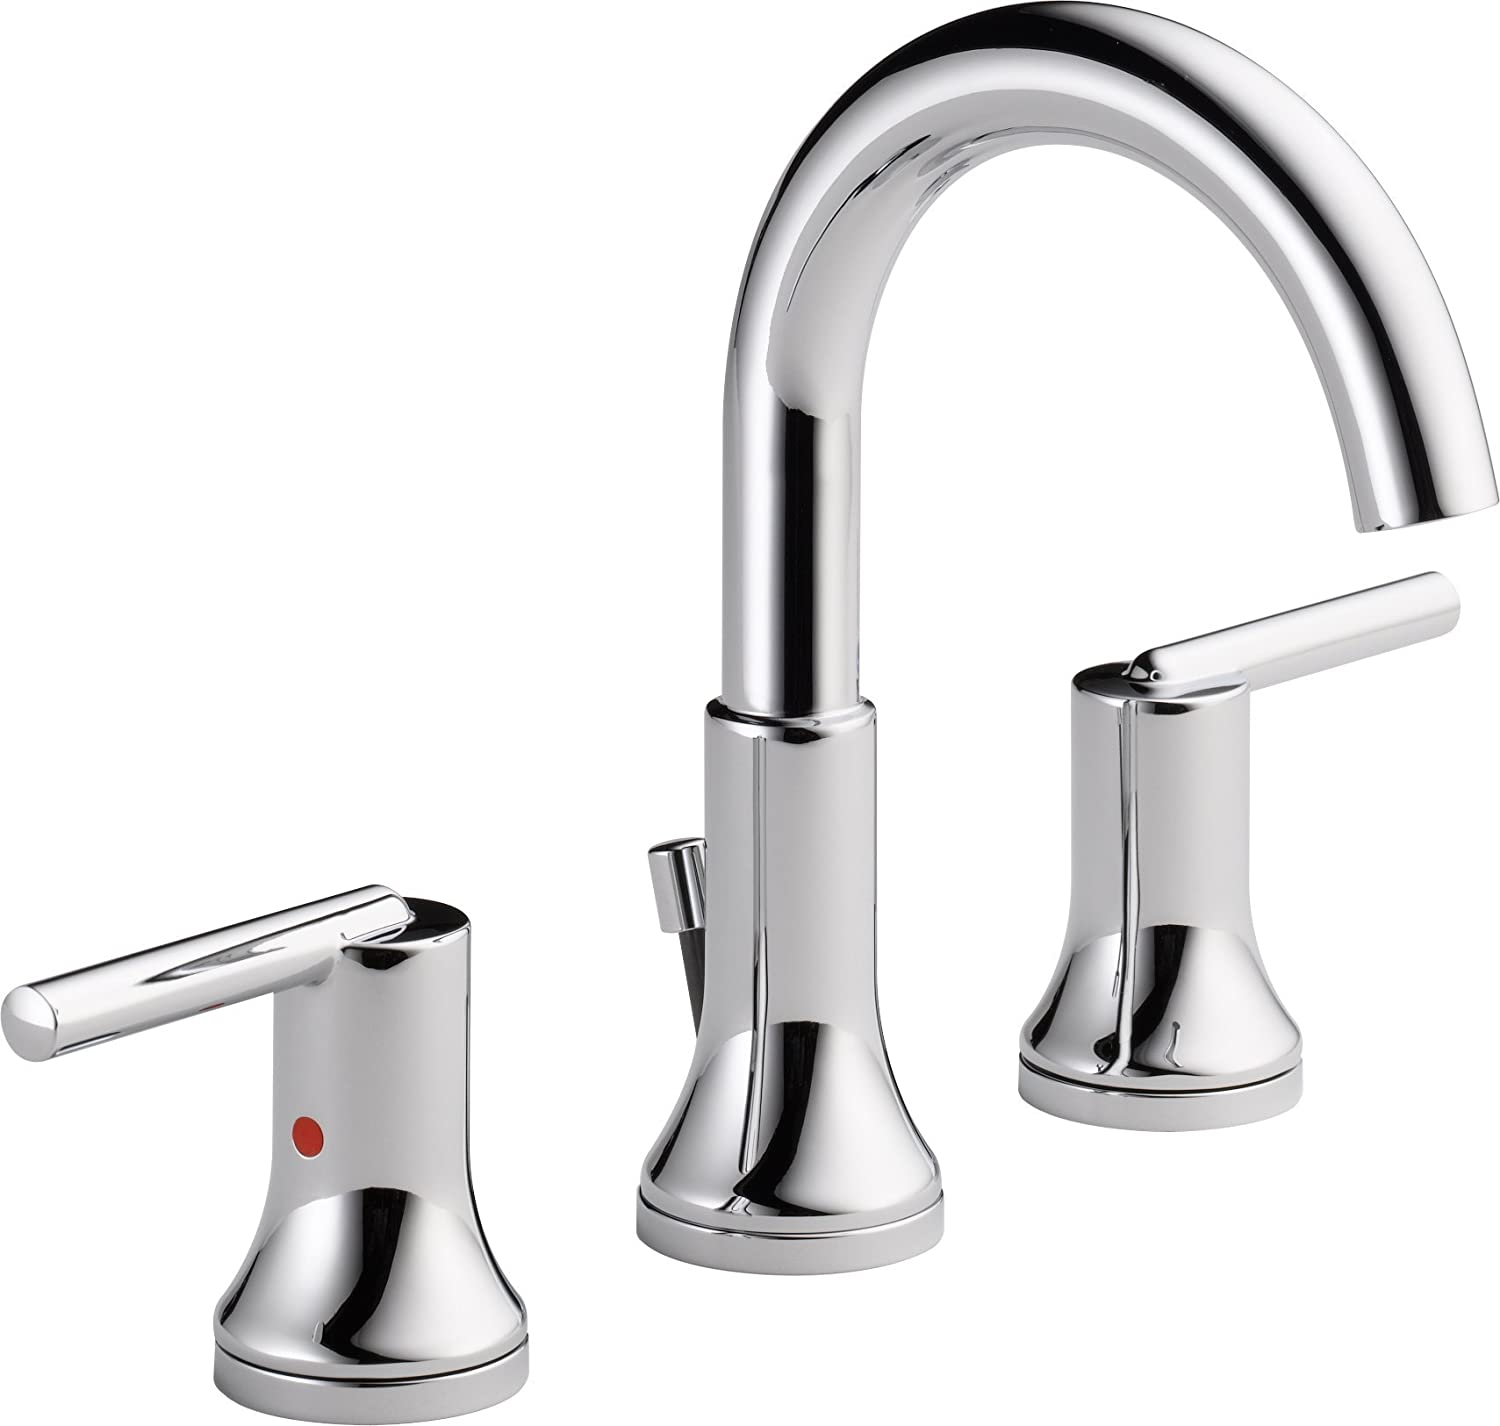 Delta Faucet 3559 MPU DST Trinsic, Widespread Bath Faucet With Metal  Pop Up, Chrome   Two Handle Tub Only Faucets   Amazon.com